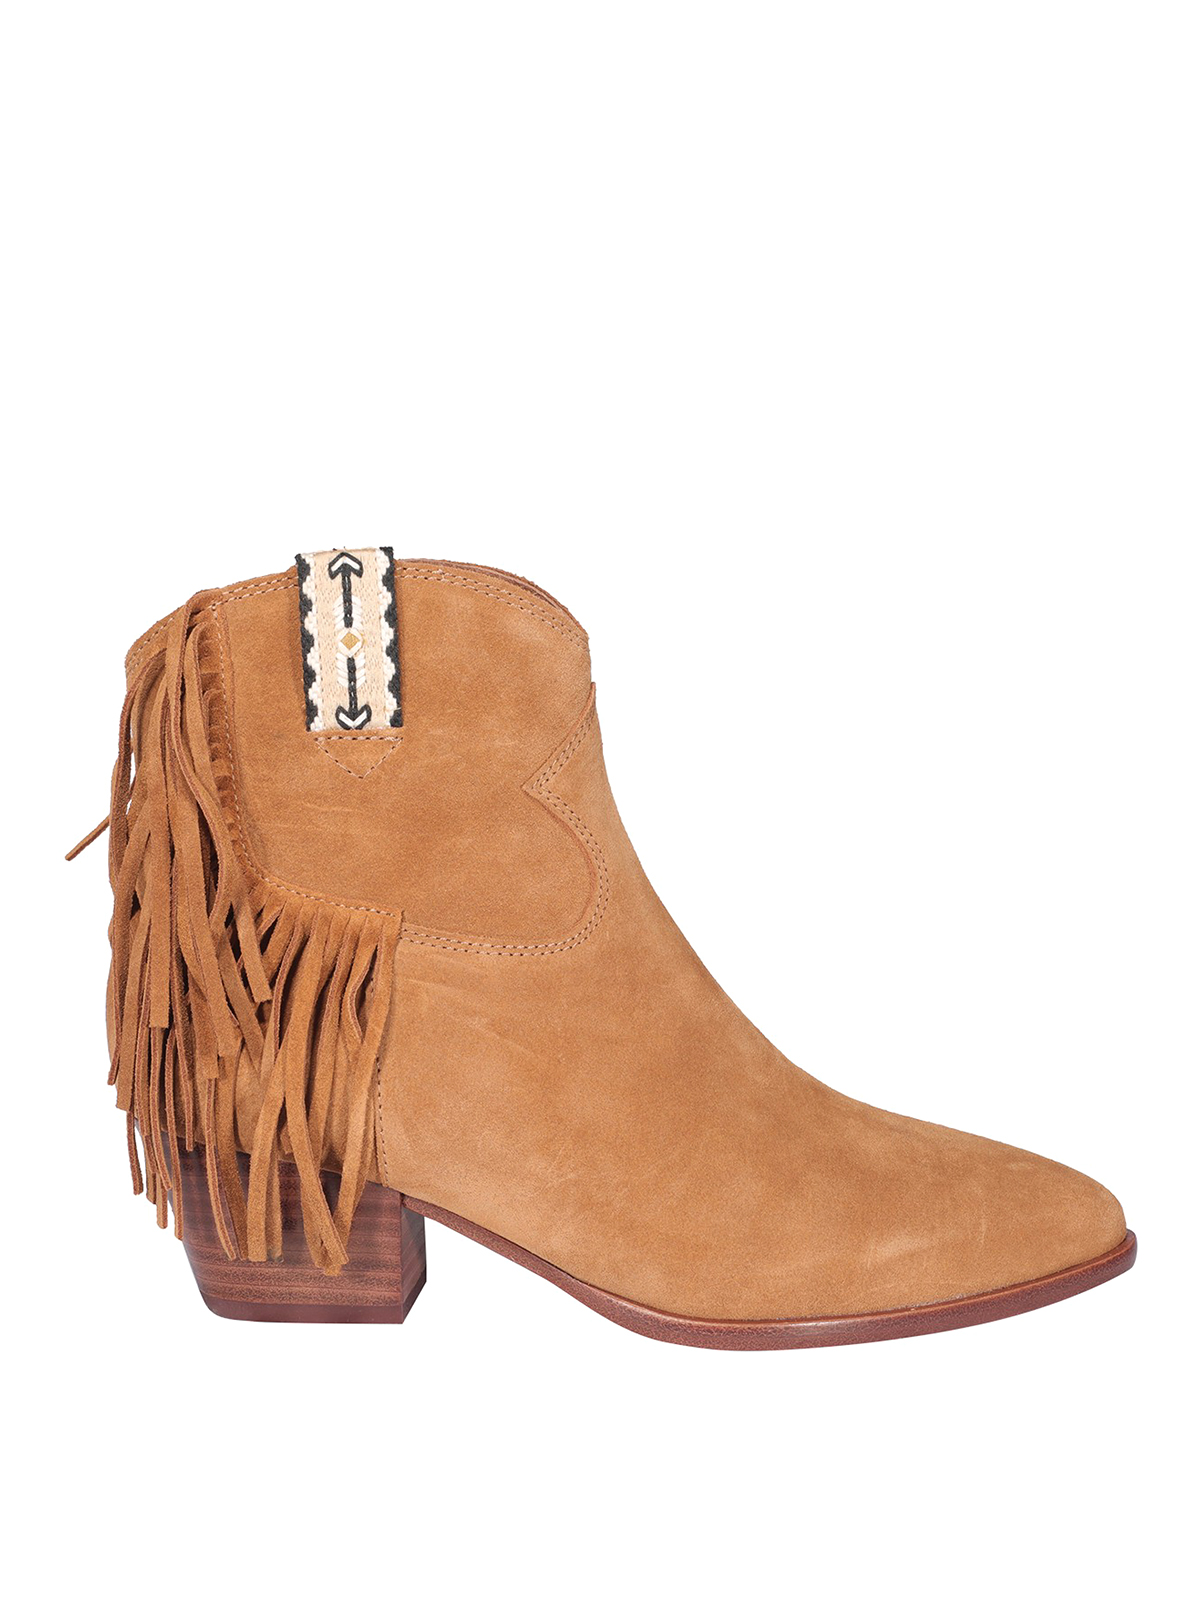 Ash Suedes HYSTERIA SUEDE ANKLE BOOTS